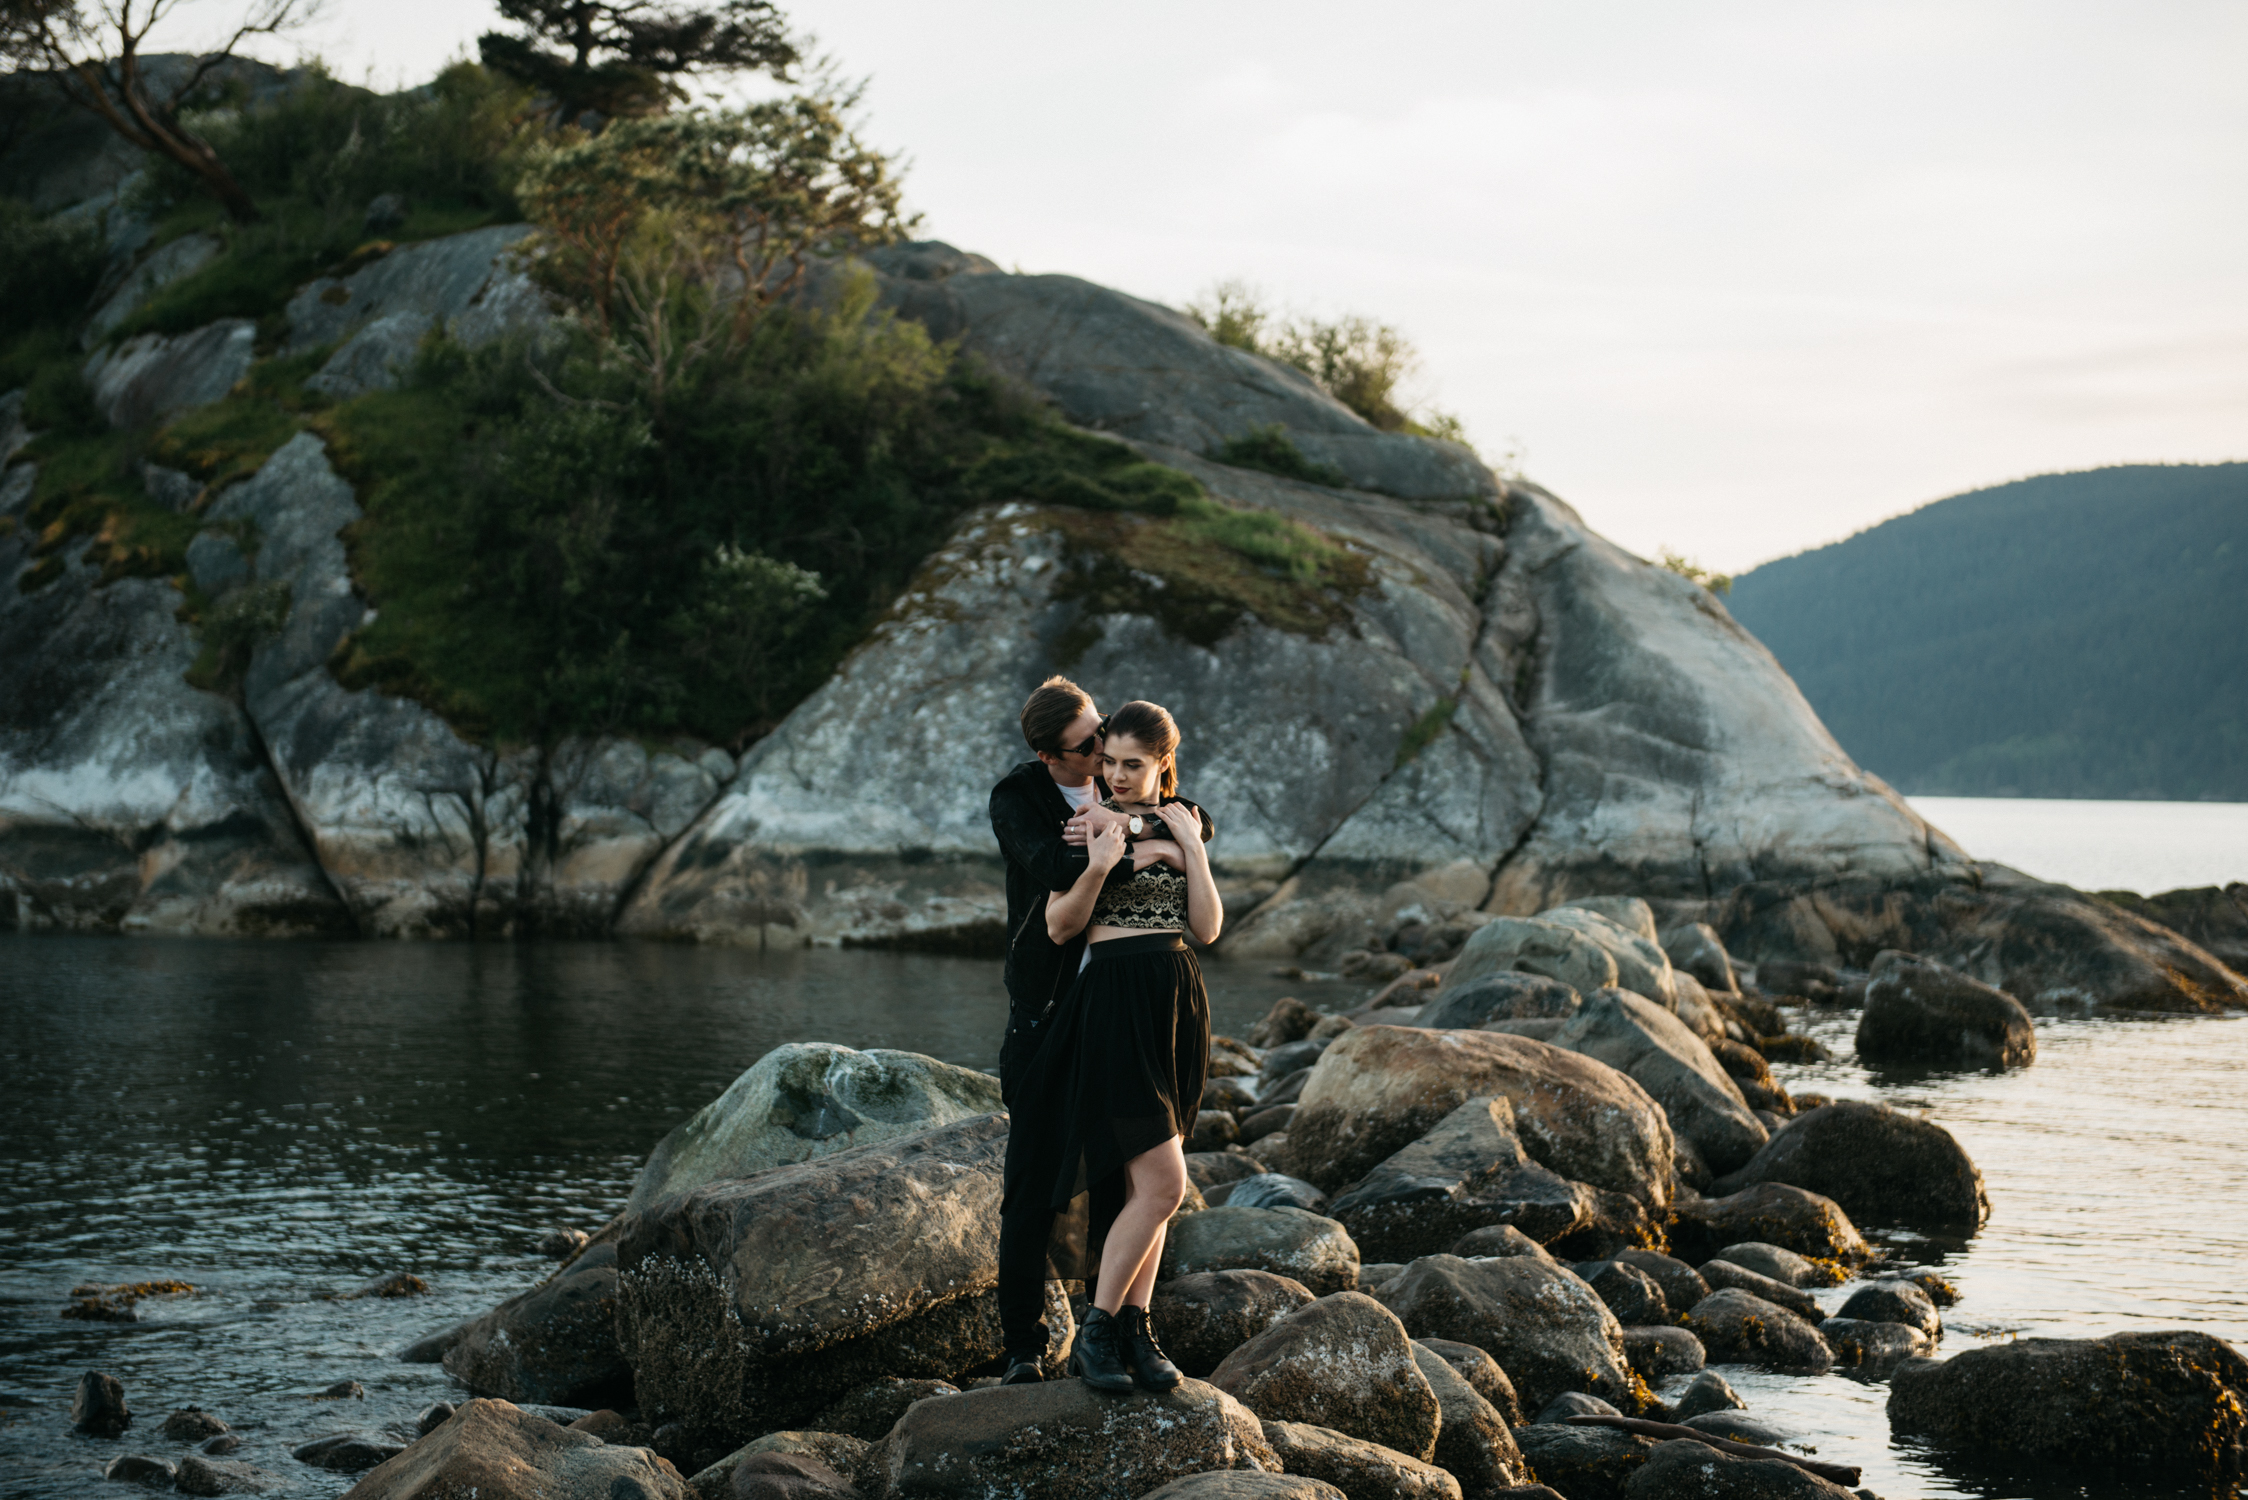 014_whytecliff_vancouver_bc_engagement.jpg